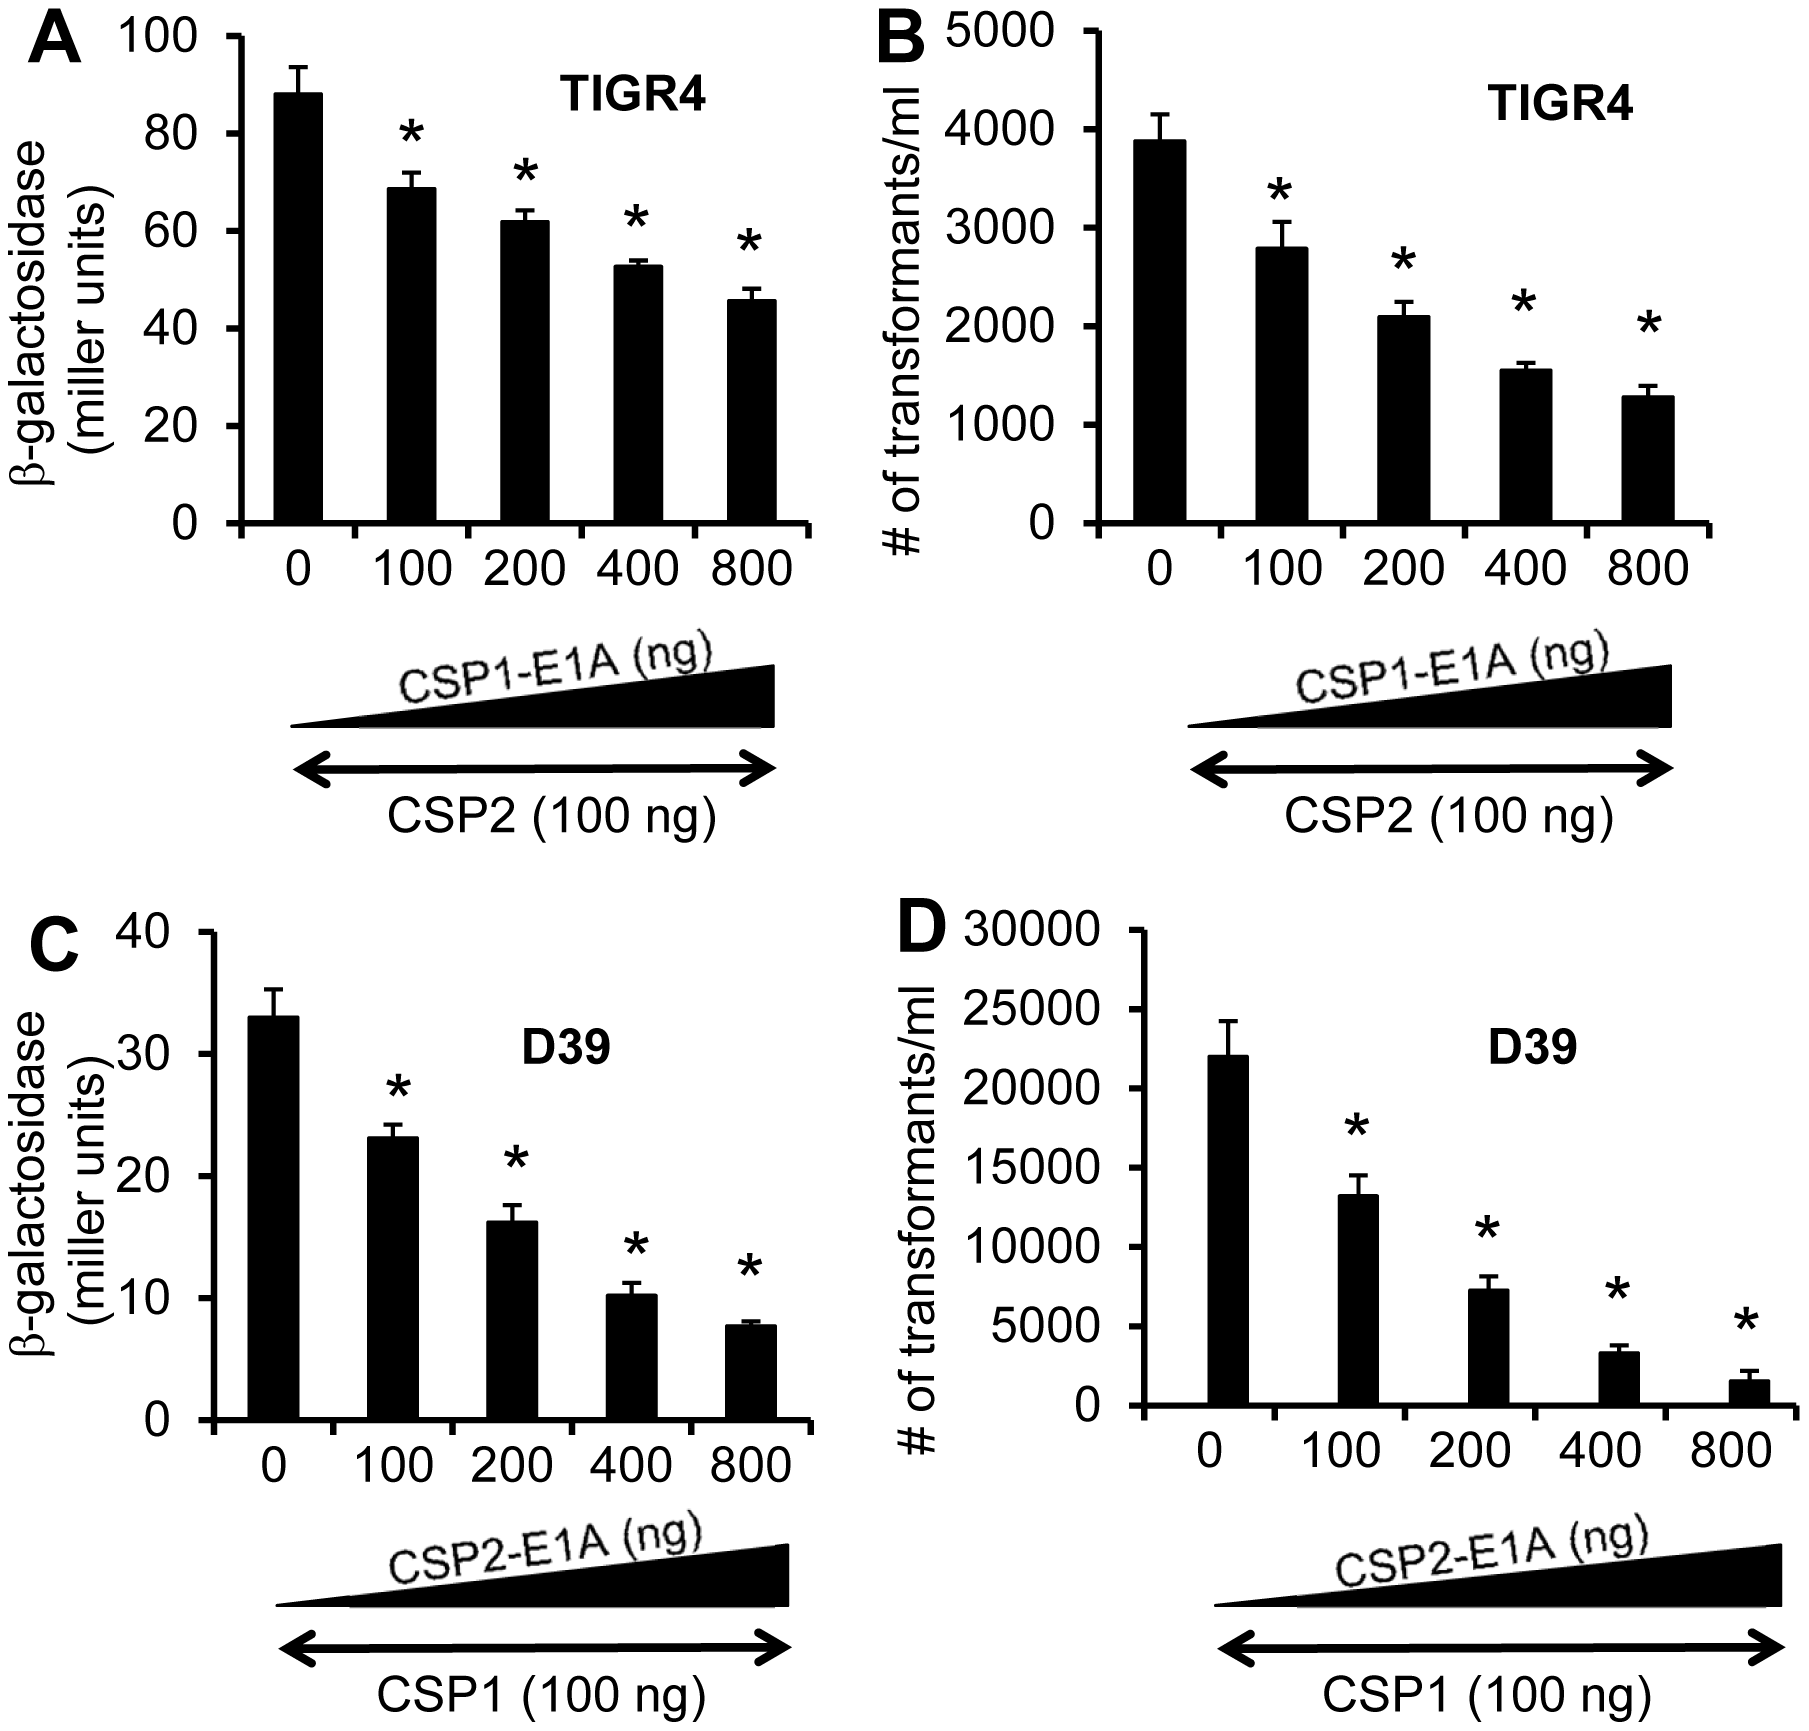 Cross inhibition of competence by CSP1-E1A and CSP2-E1A in <i>S. pneumoniae</i> strains with incompatible ComD subtypes.